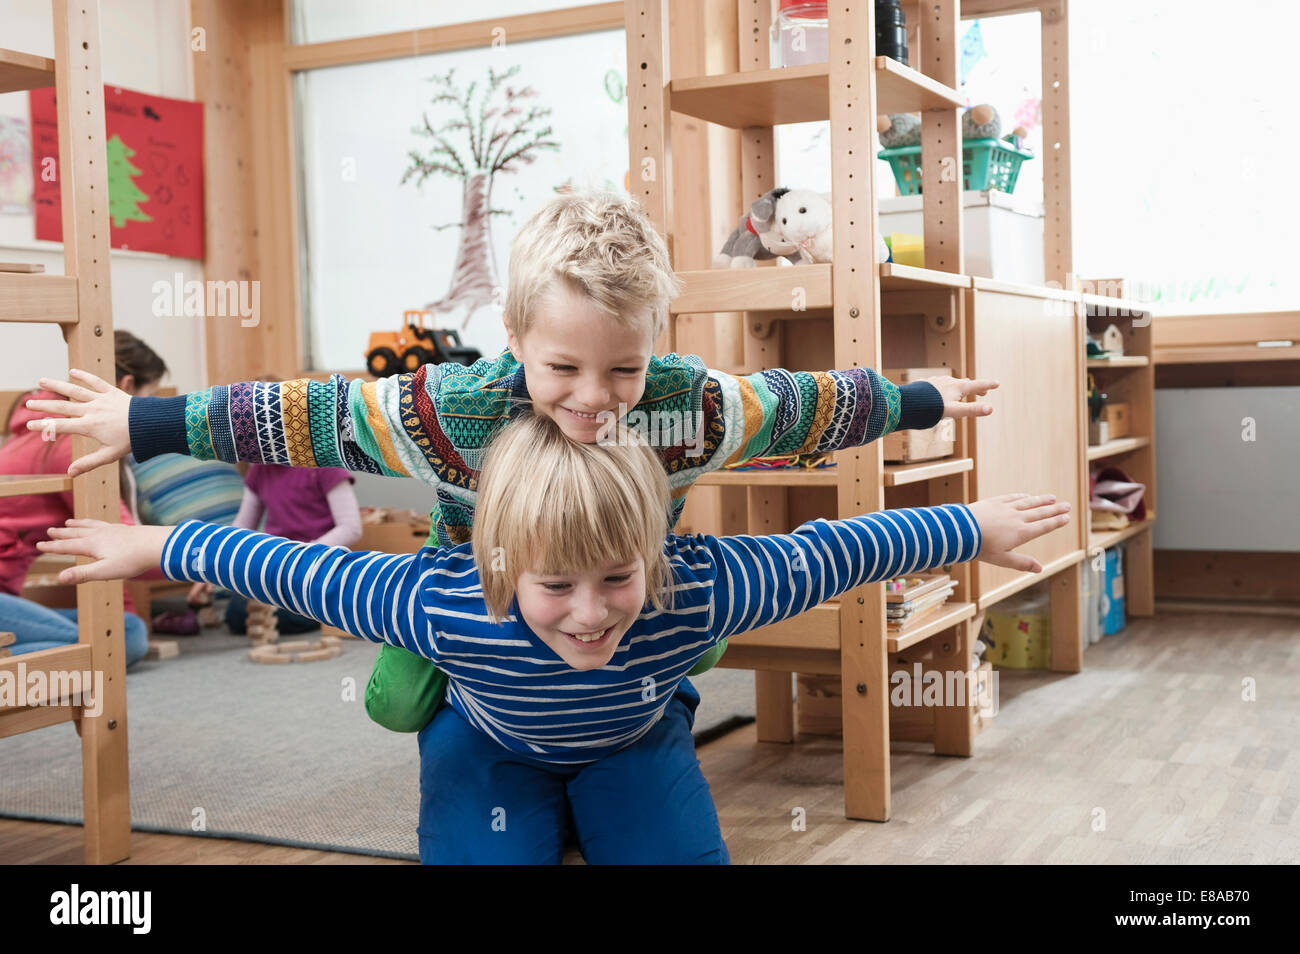 Two brothers playing together - Stock Image